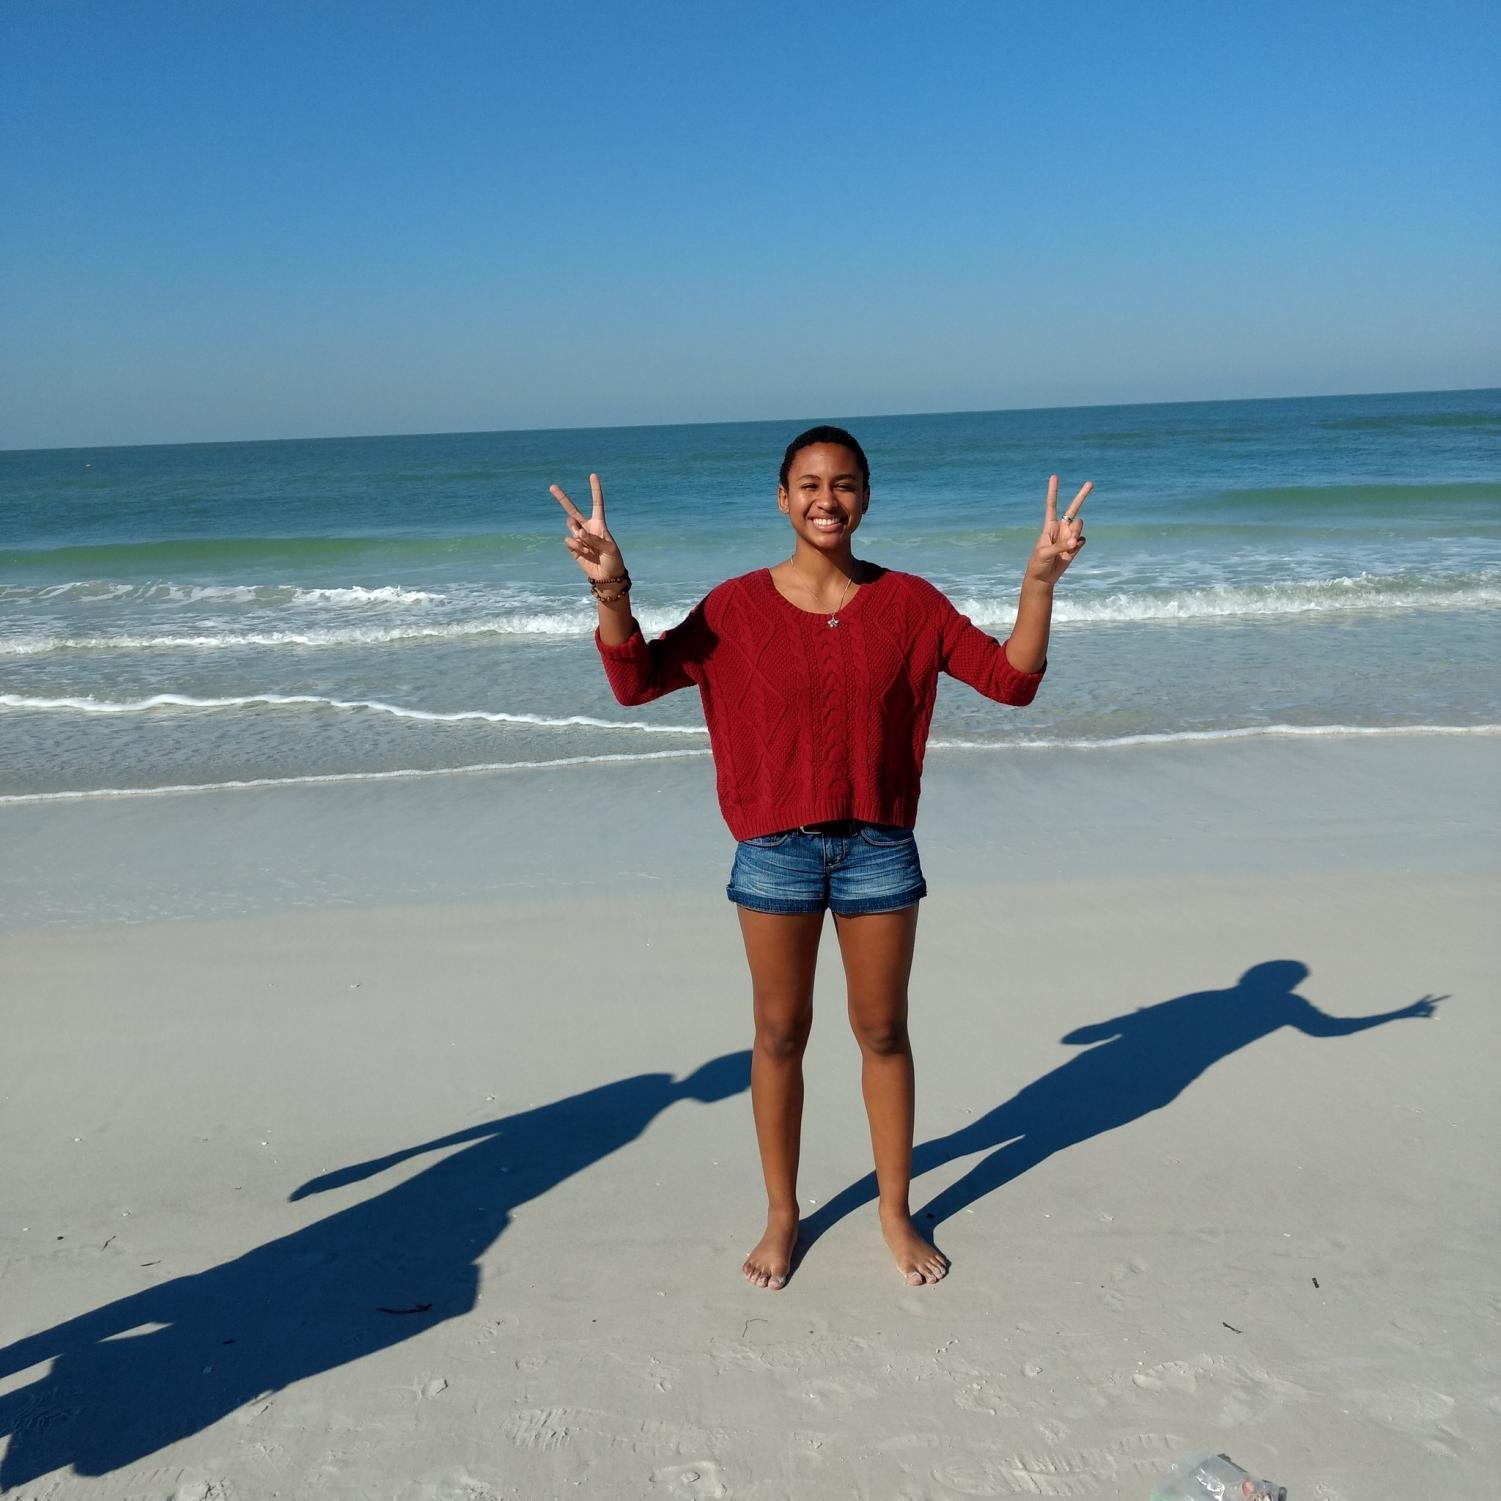 Senior Class President, Mathea Riley, poses on the beach.